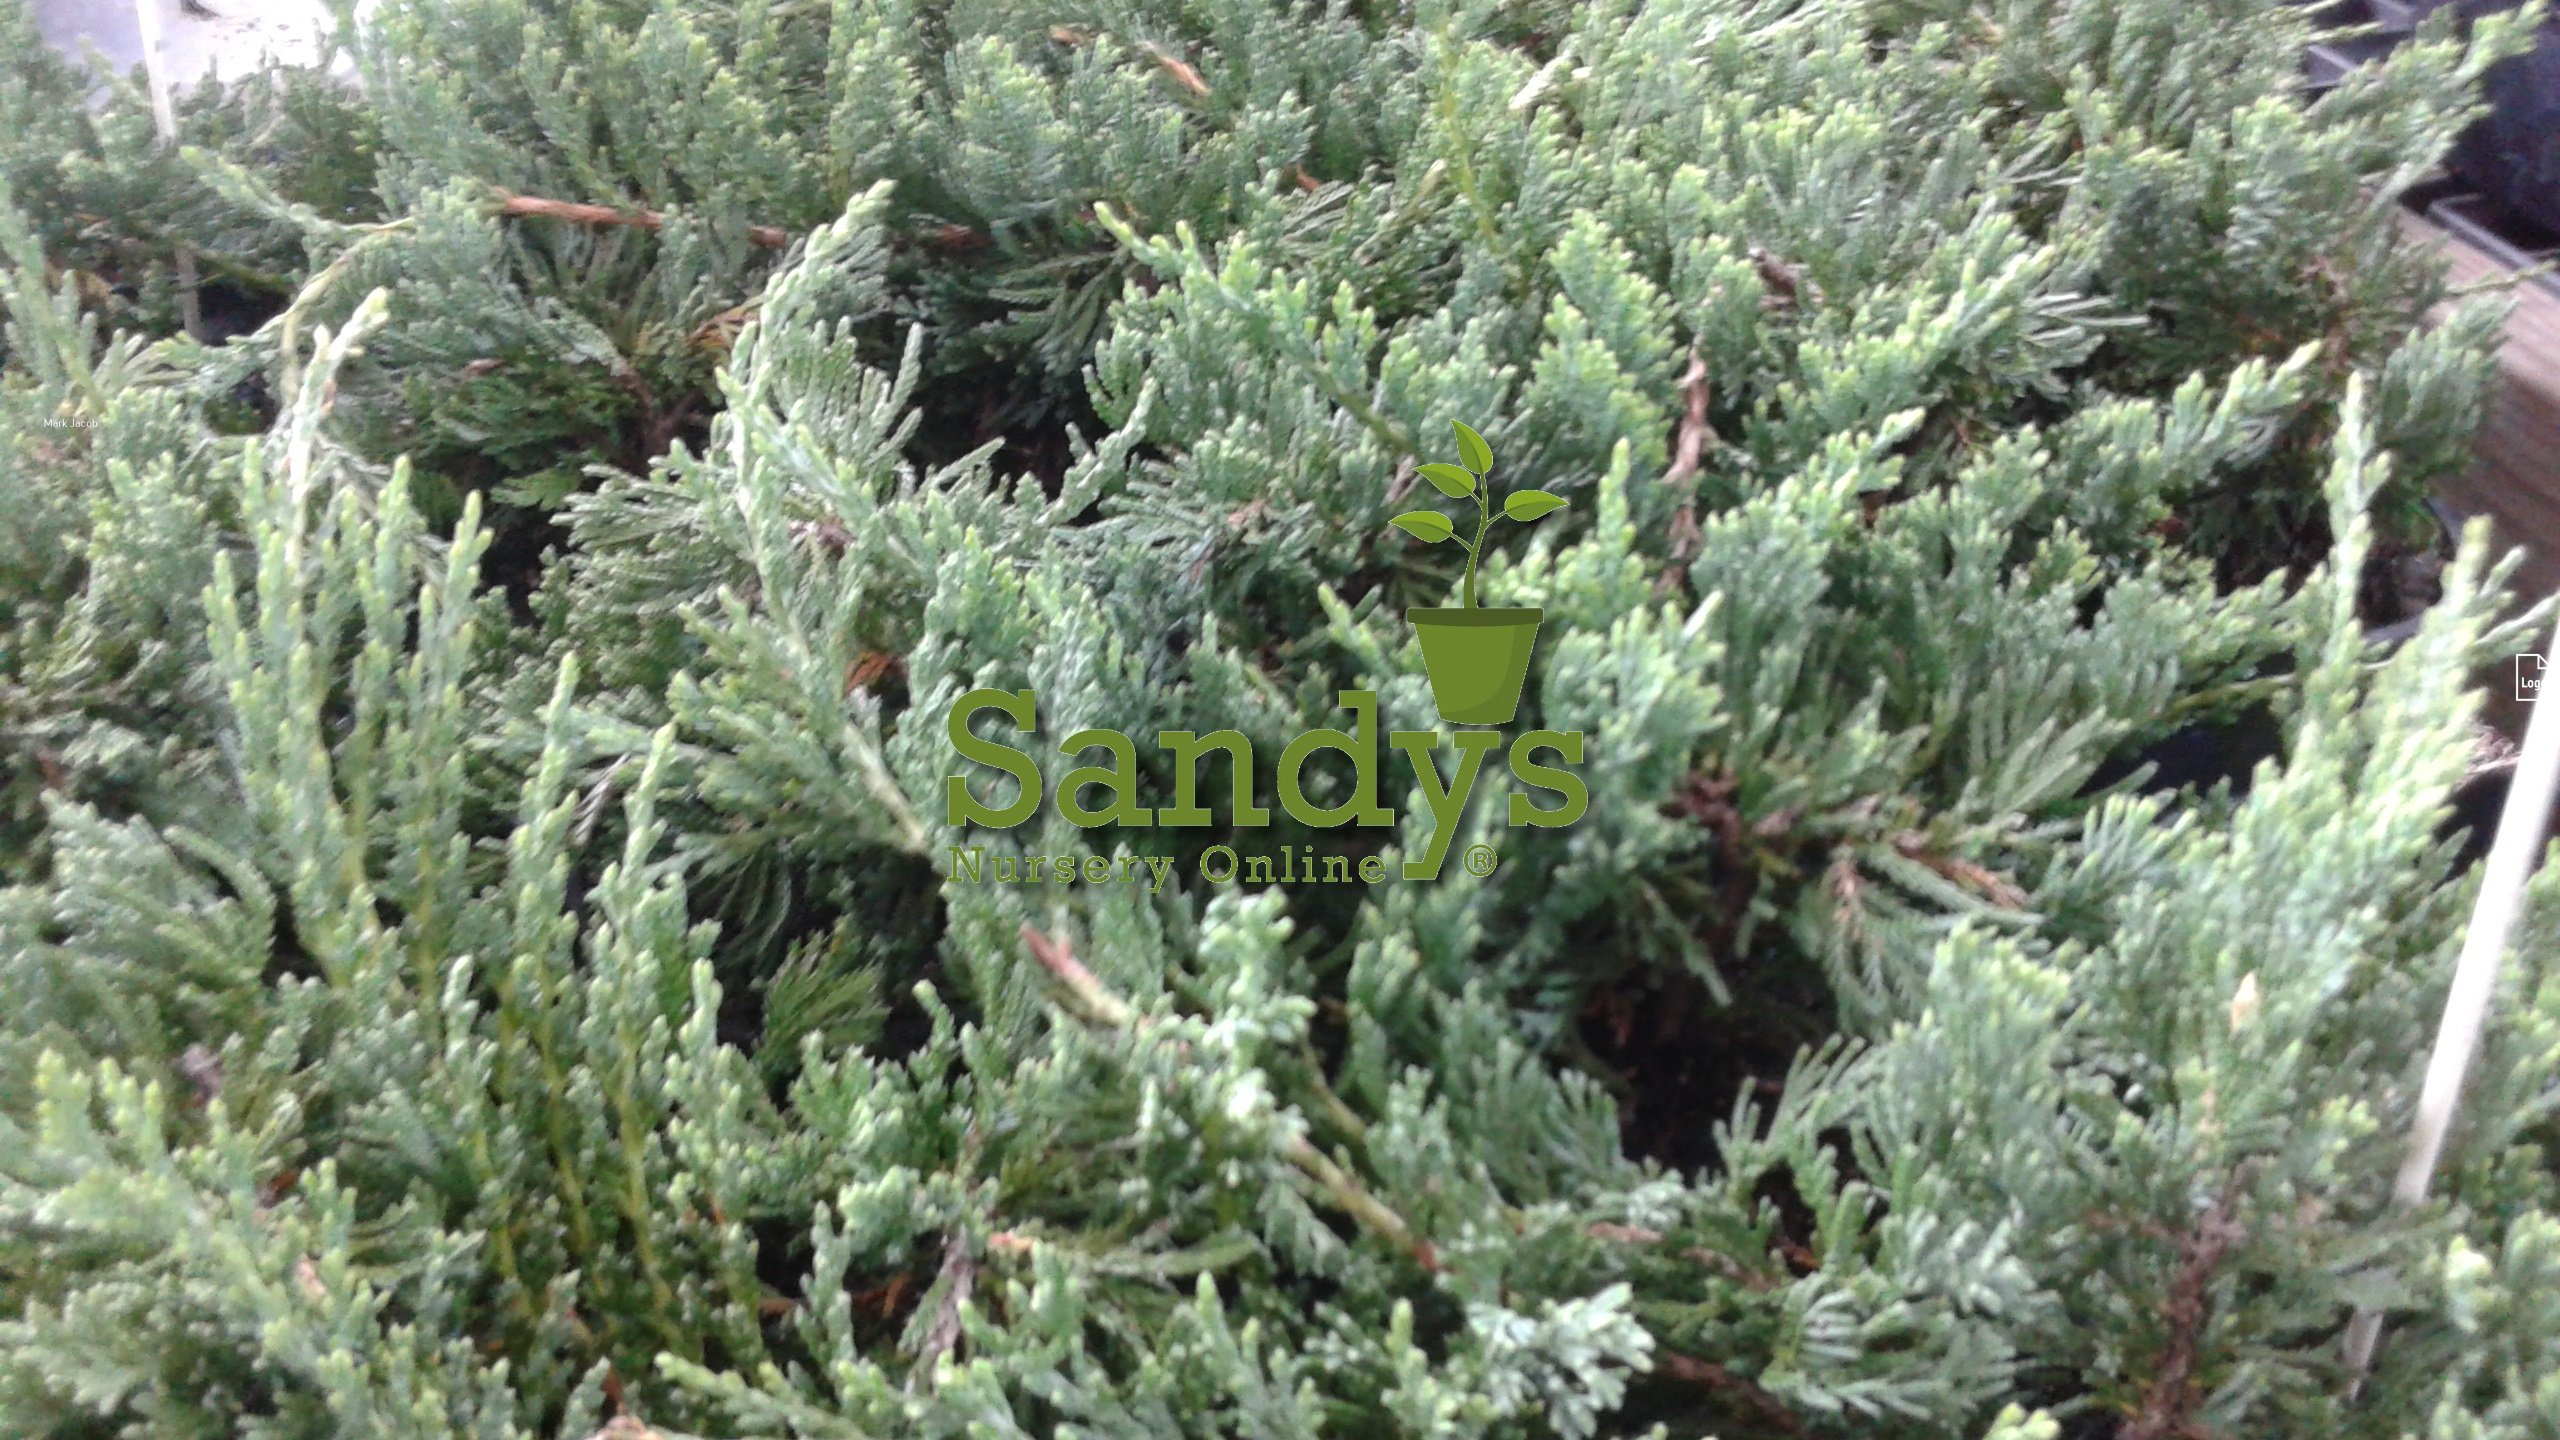 Juniper Blue Rug Ground Cover 2 Tray of 60 plants each. A total of 120 plant/plugs. Ideal for mass plantings and lining out stock by Sandys Nursery Online